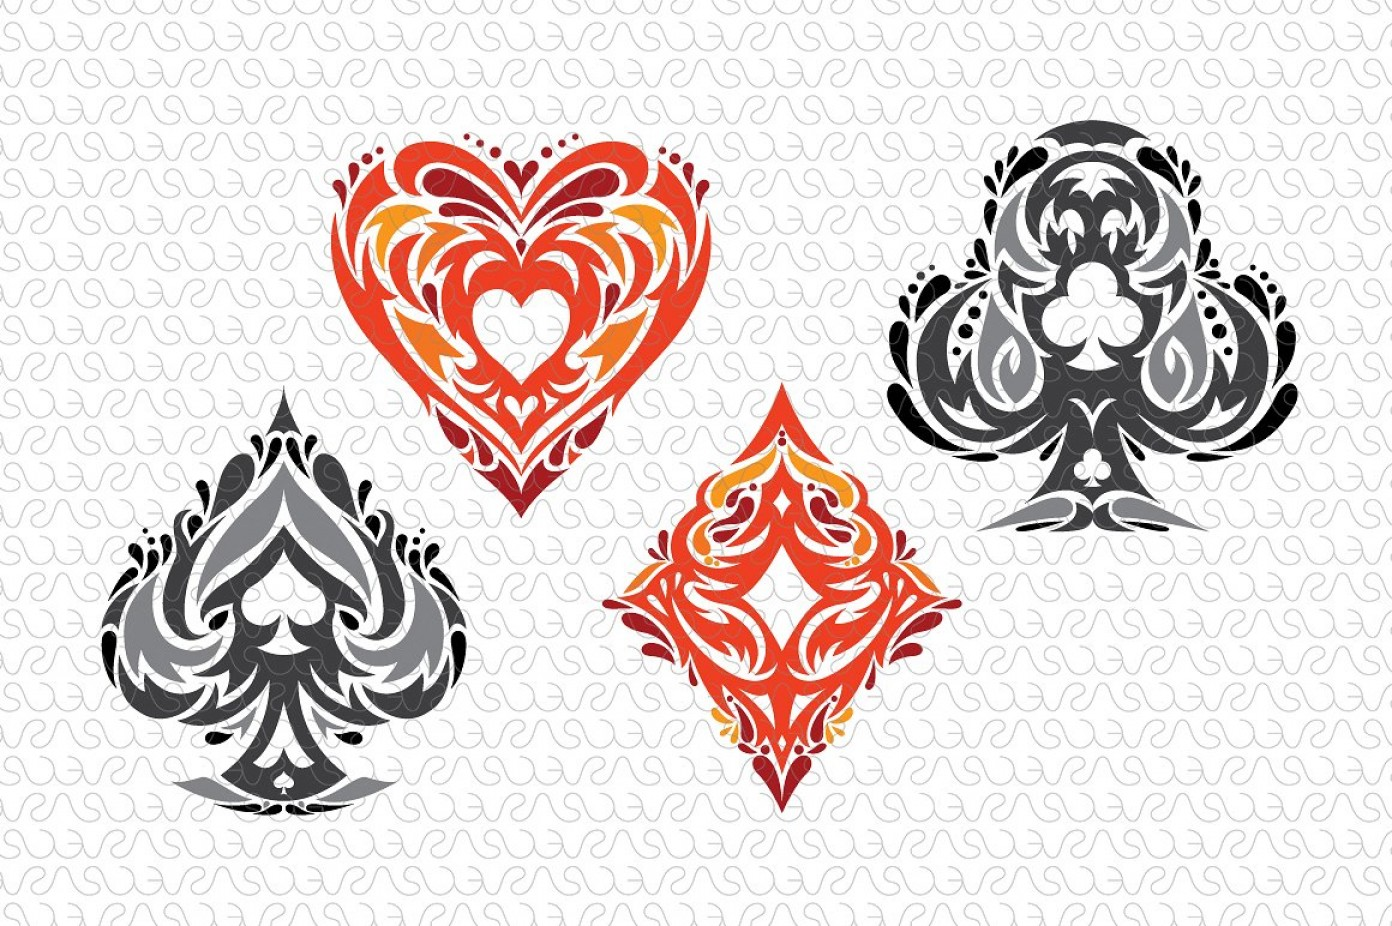 Playing Card Design Vector Illustration: Playing Cards Tribal Vector Symbols